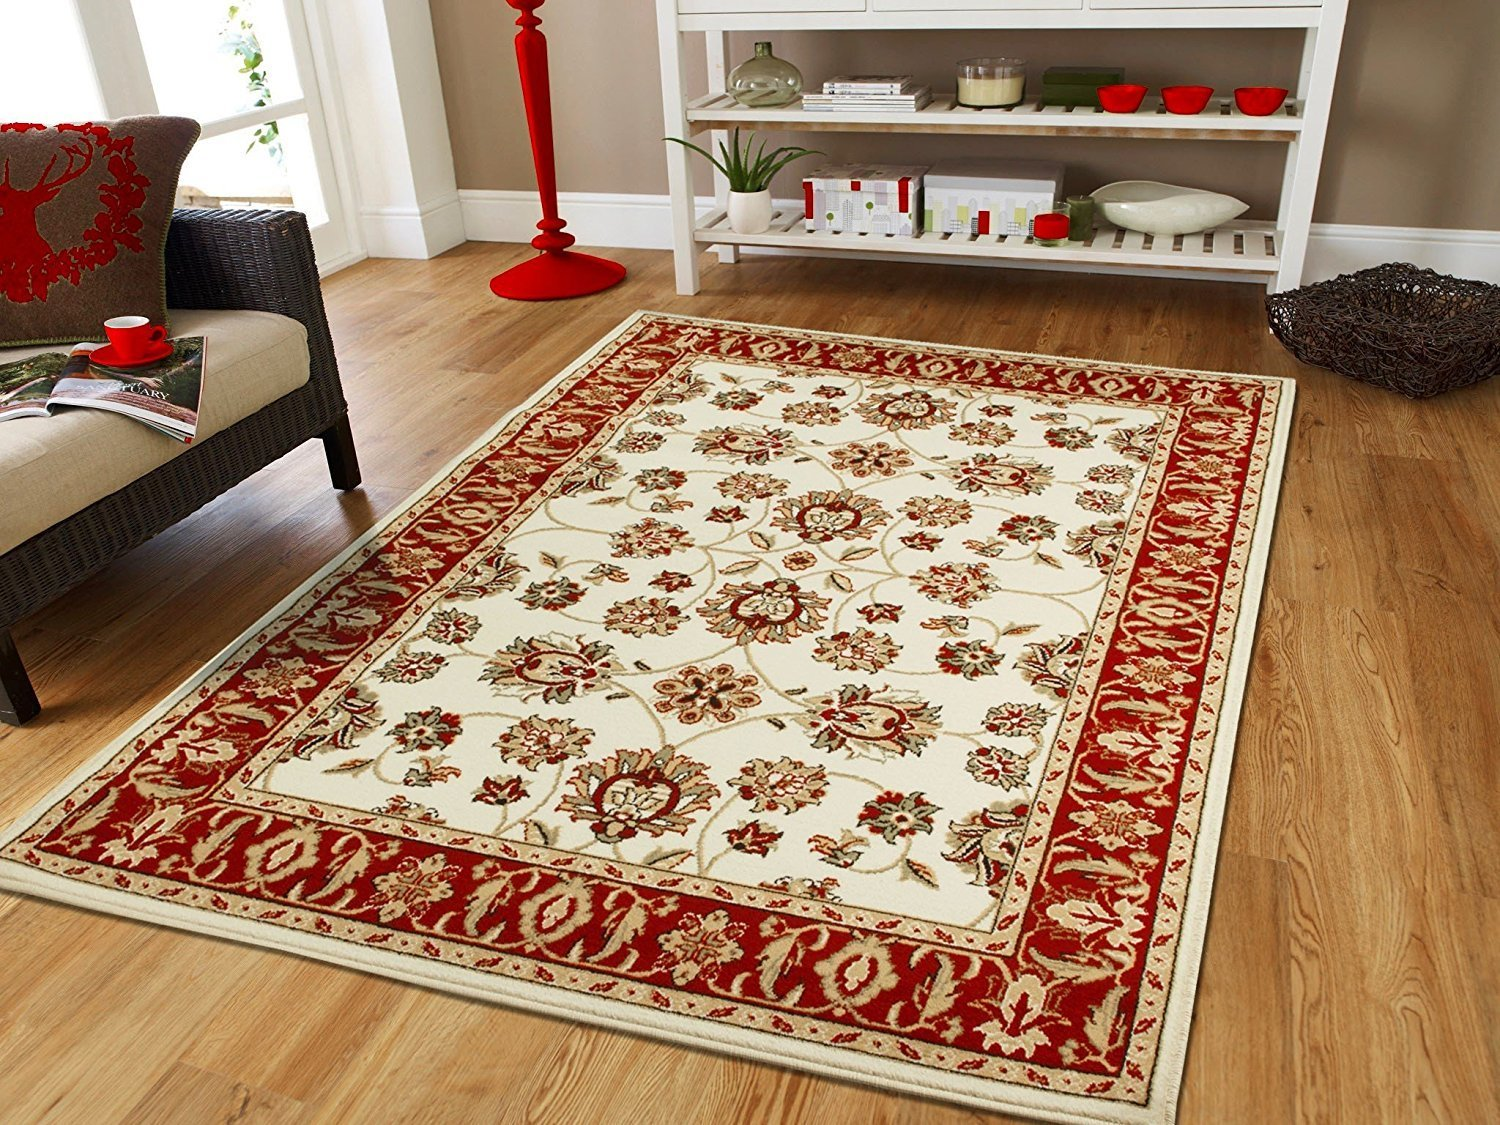 Best Traditional Rugs Ivory Bedroom Rugs 5X7 Cream Area Rugs On With Pictures